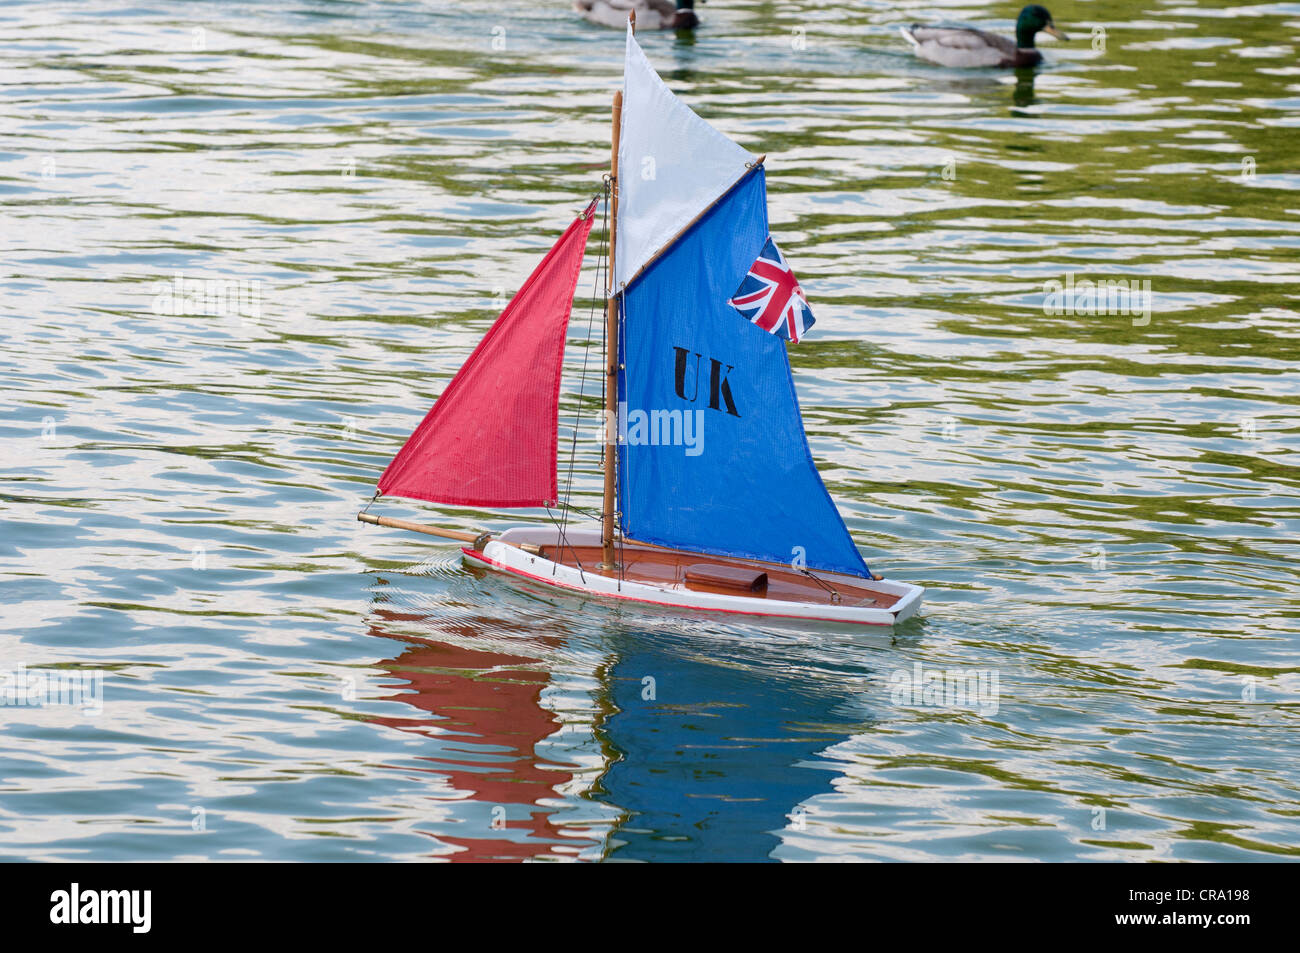 Toy Yacht Stock Photos & Toy Yacht Stock Images - Alamy